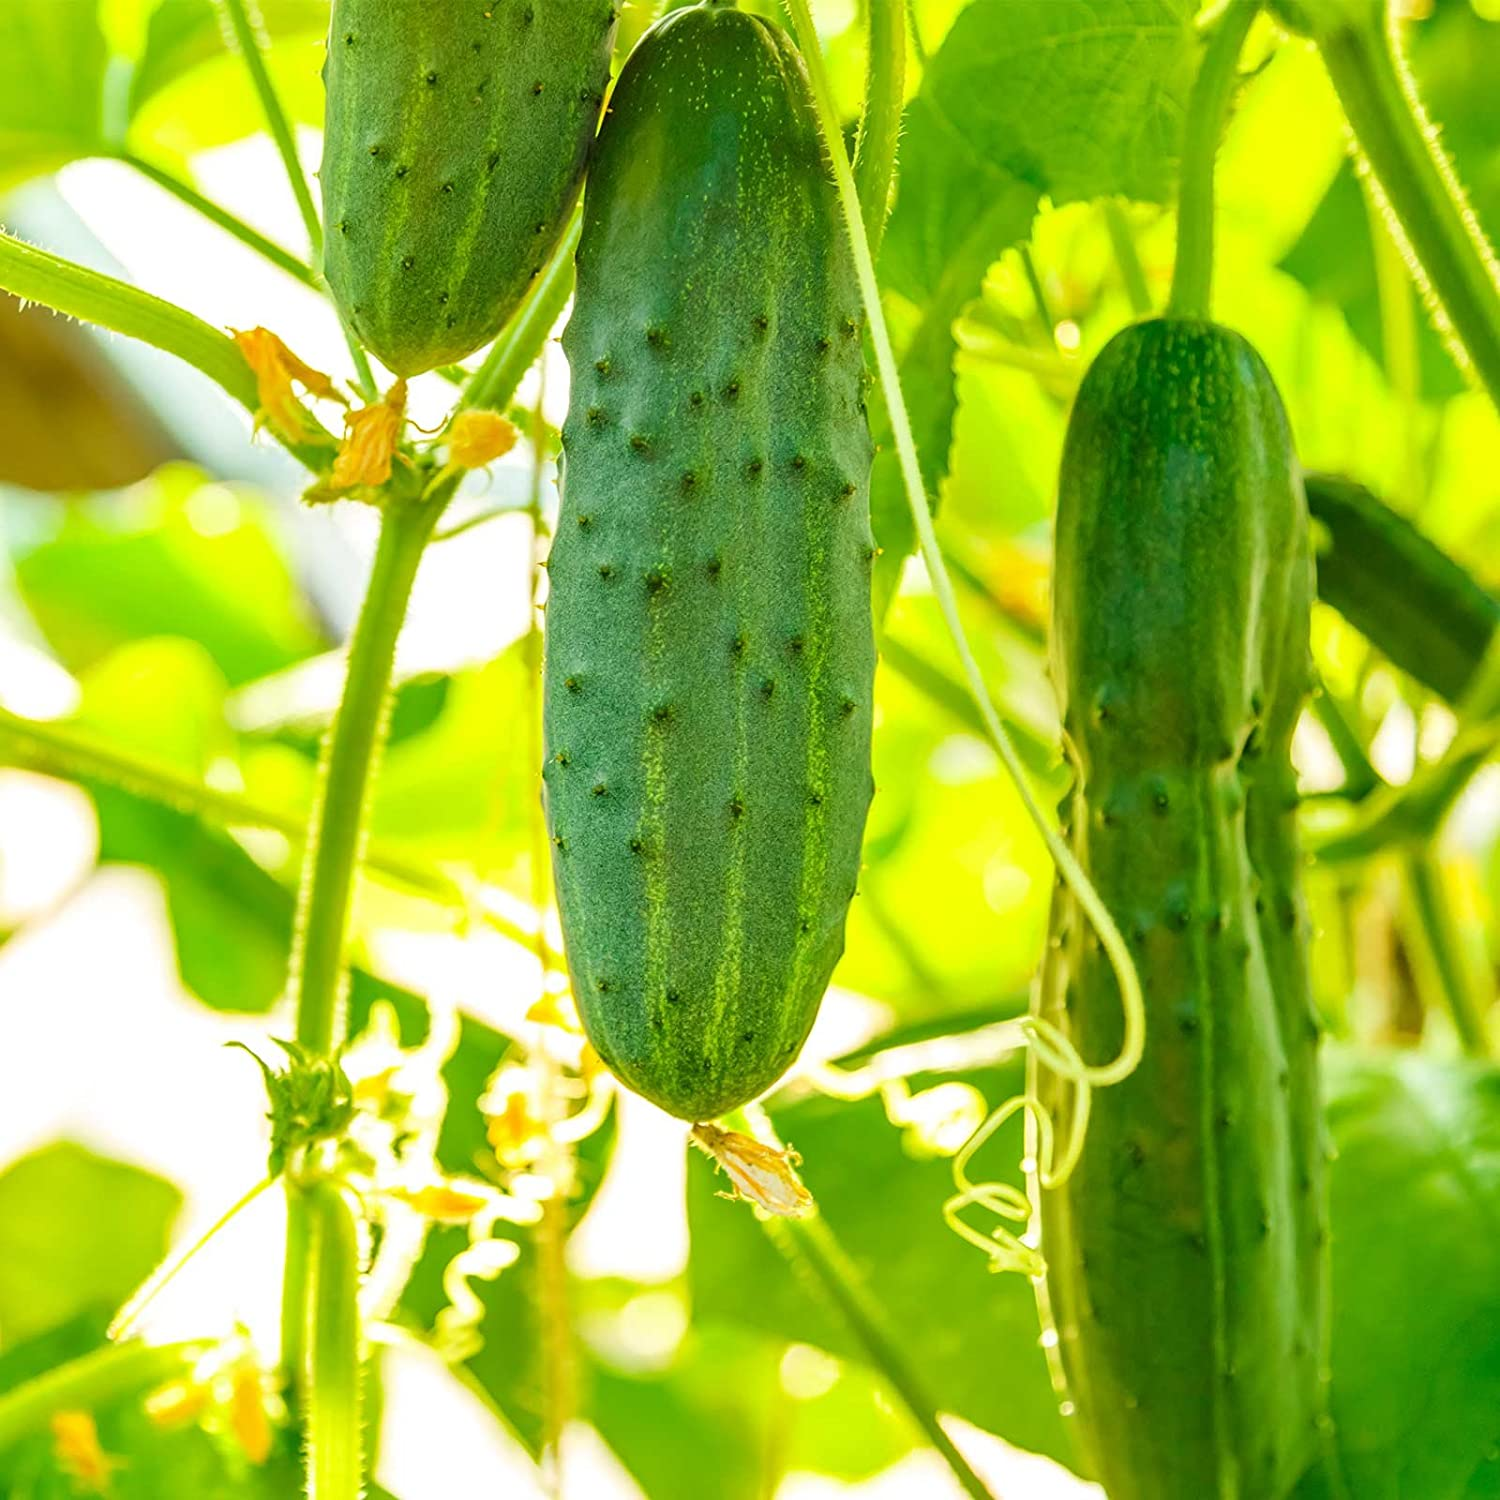 Salad Bush Hybrid Cucumber Garden Seeds - 1000 Seeds - Non-GMO, AAS Award Winner - Vegetable Gardening Seeds